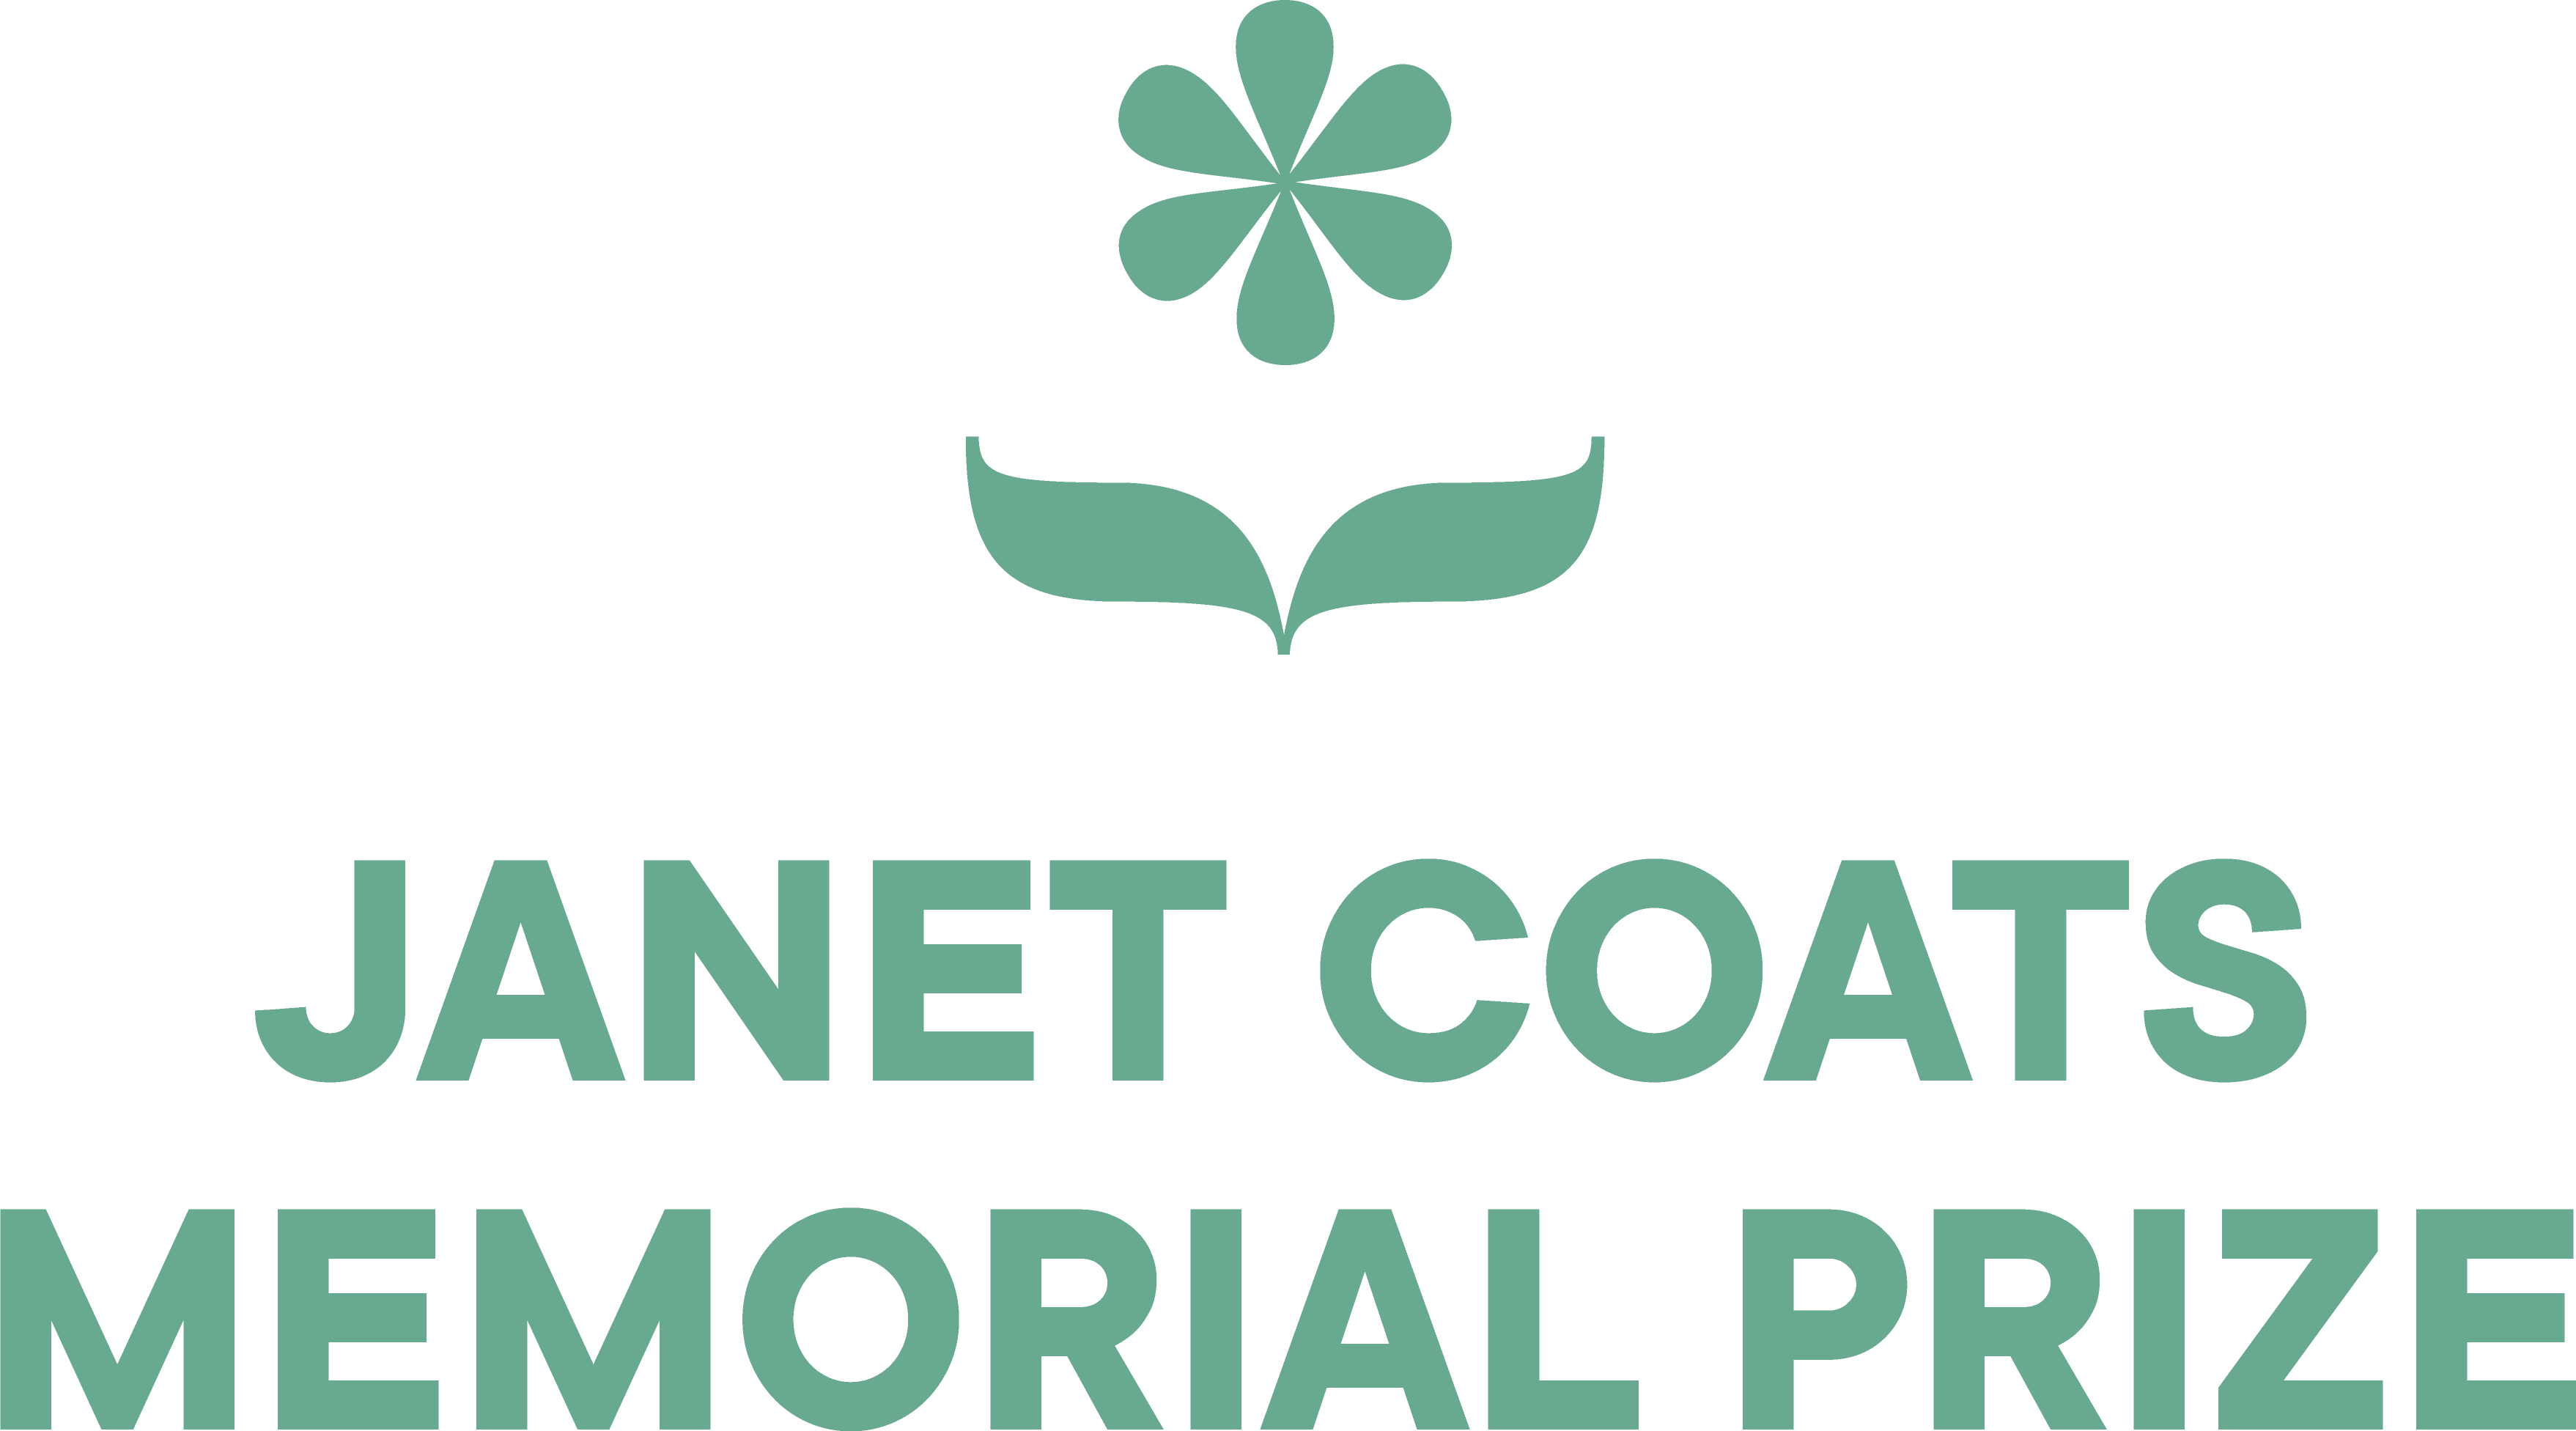 Media release: Be radical and submit your poems to the 2021 Janet Coats Memorial Prize